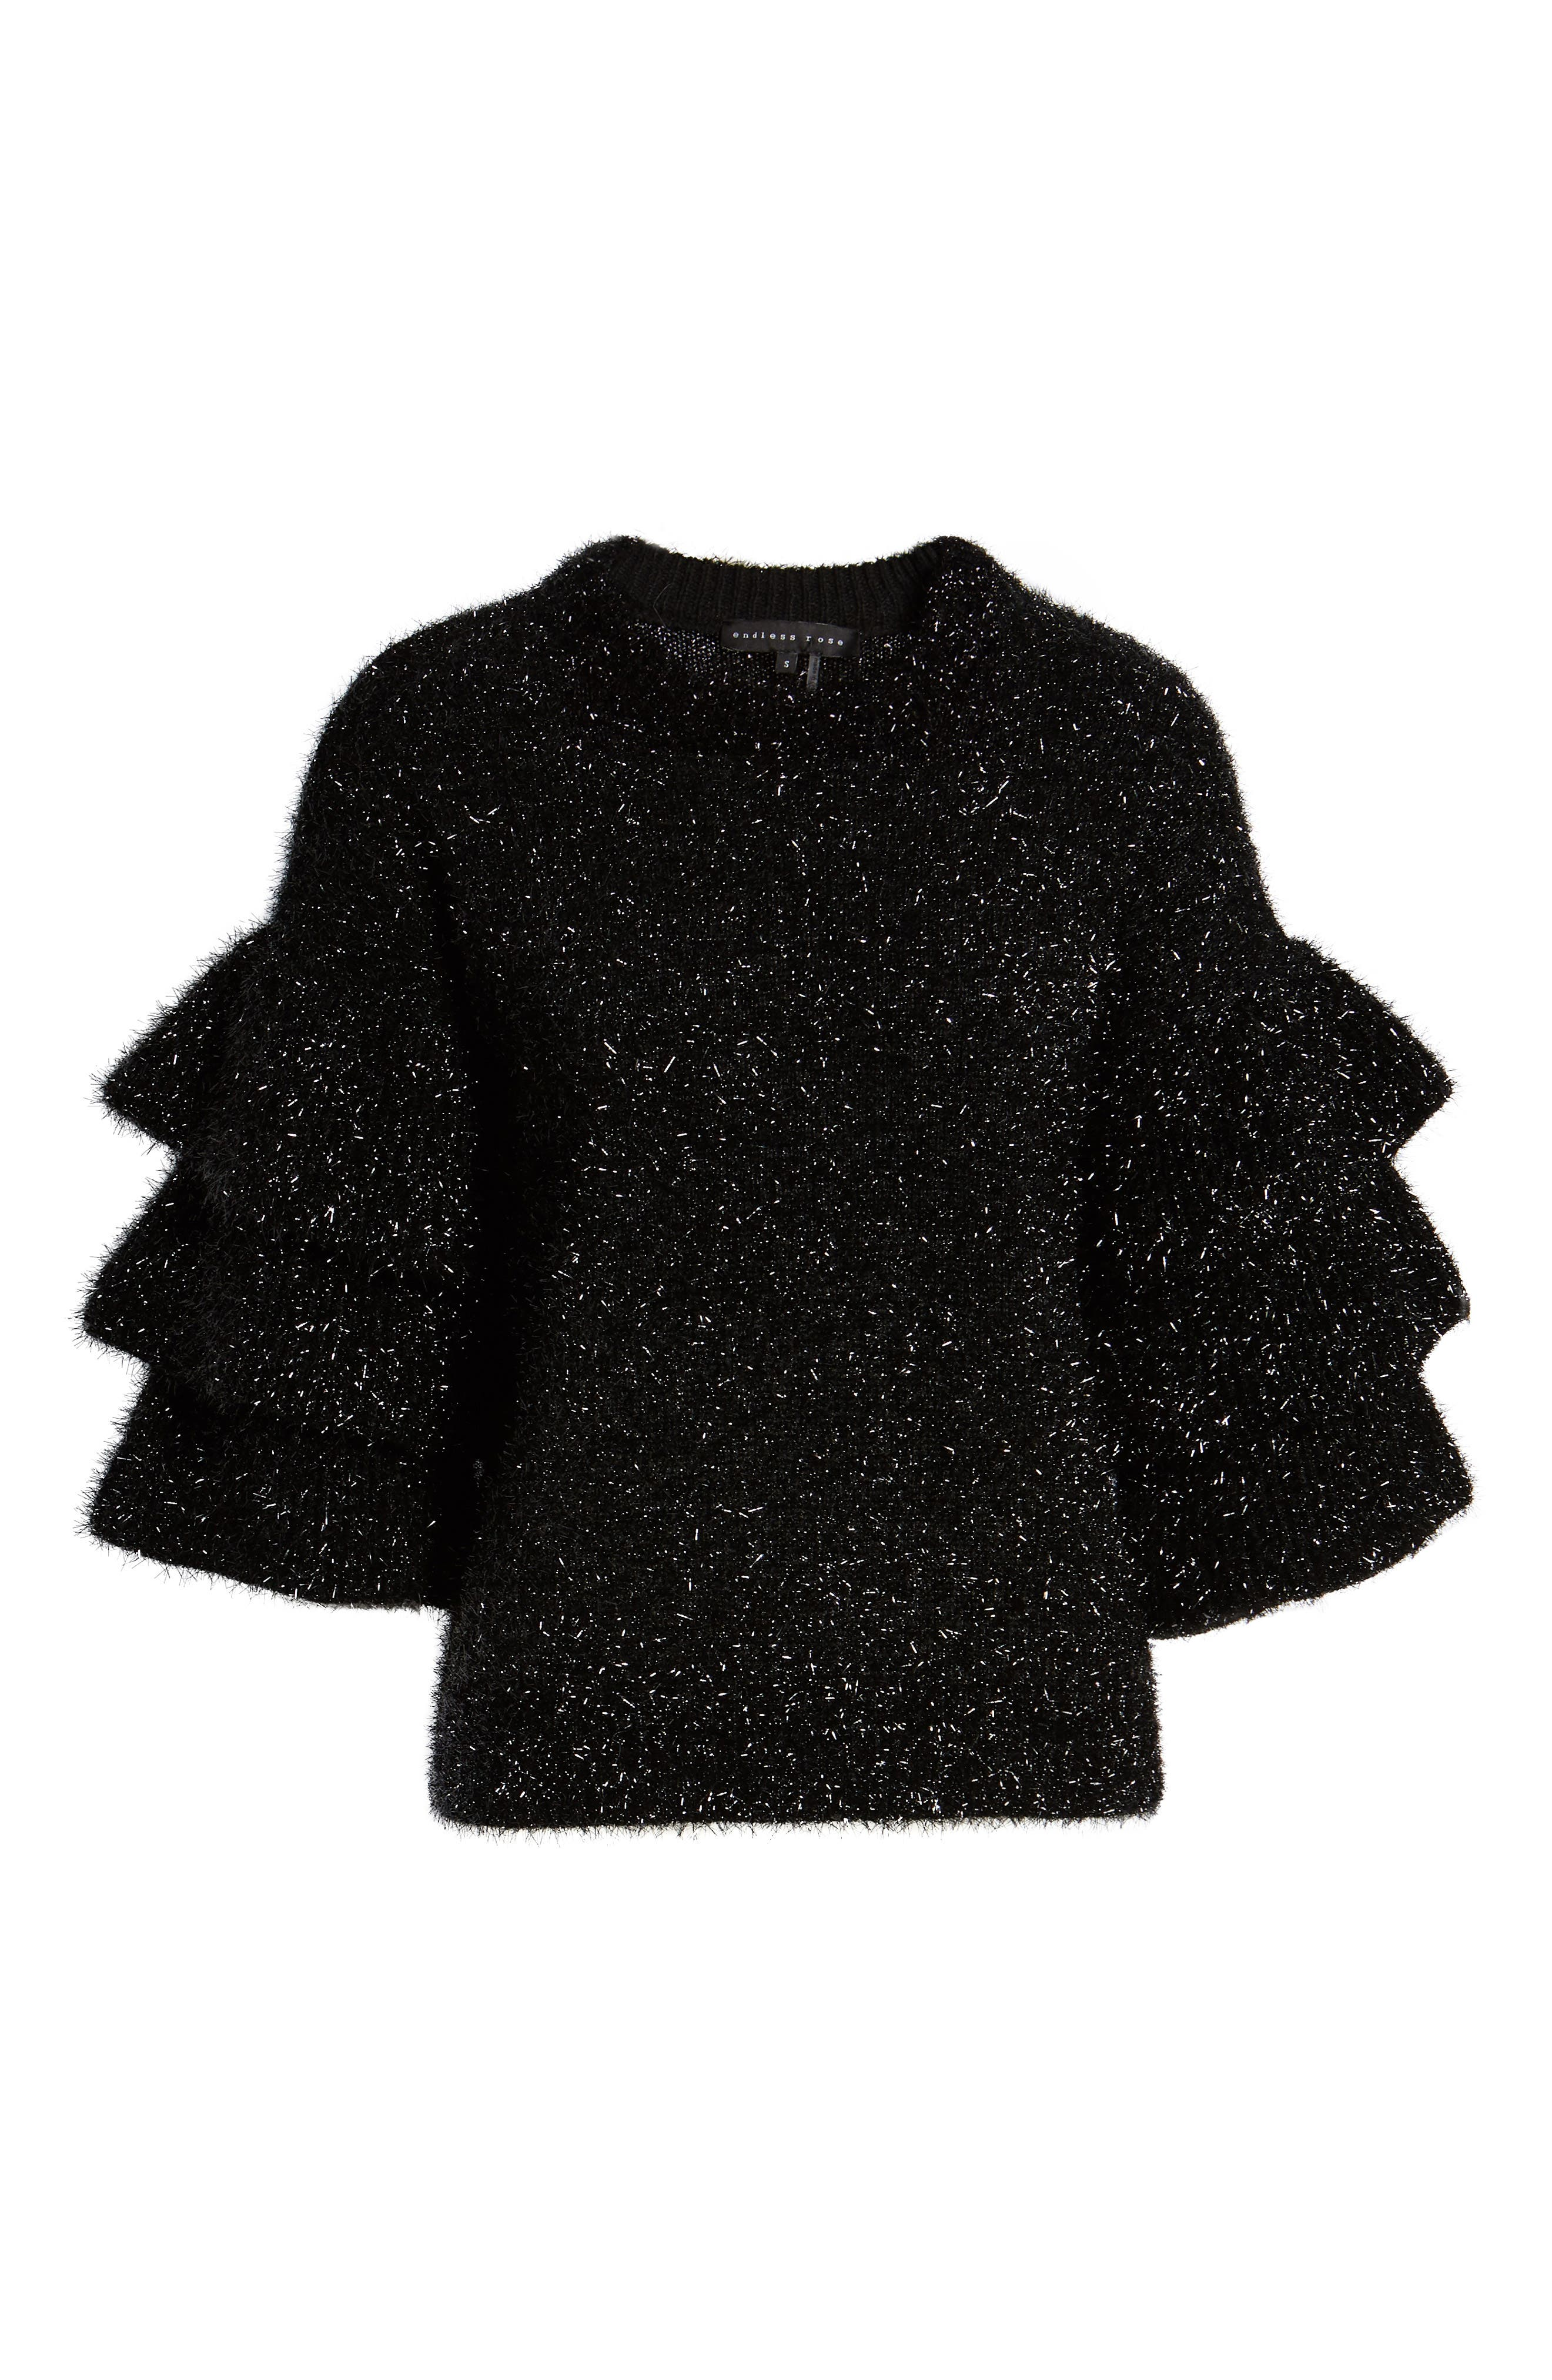 Tiered Sleeve Sweater,                             Alternate thumbnail 6, color,                             BLACK